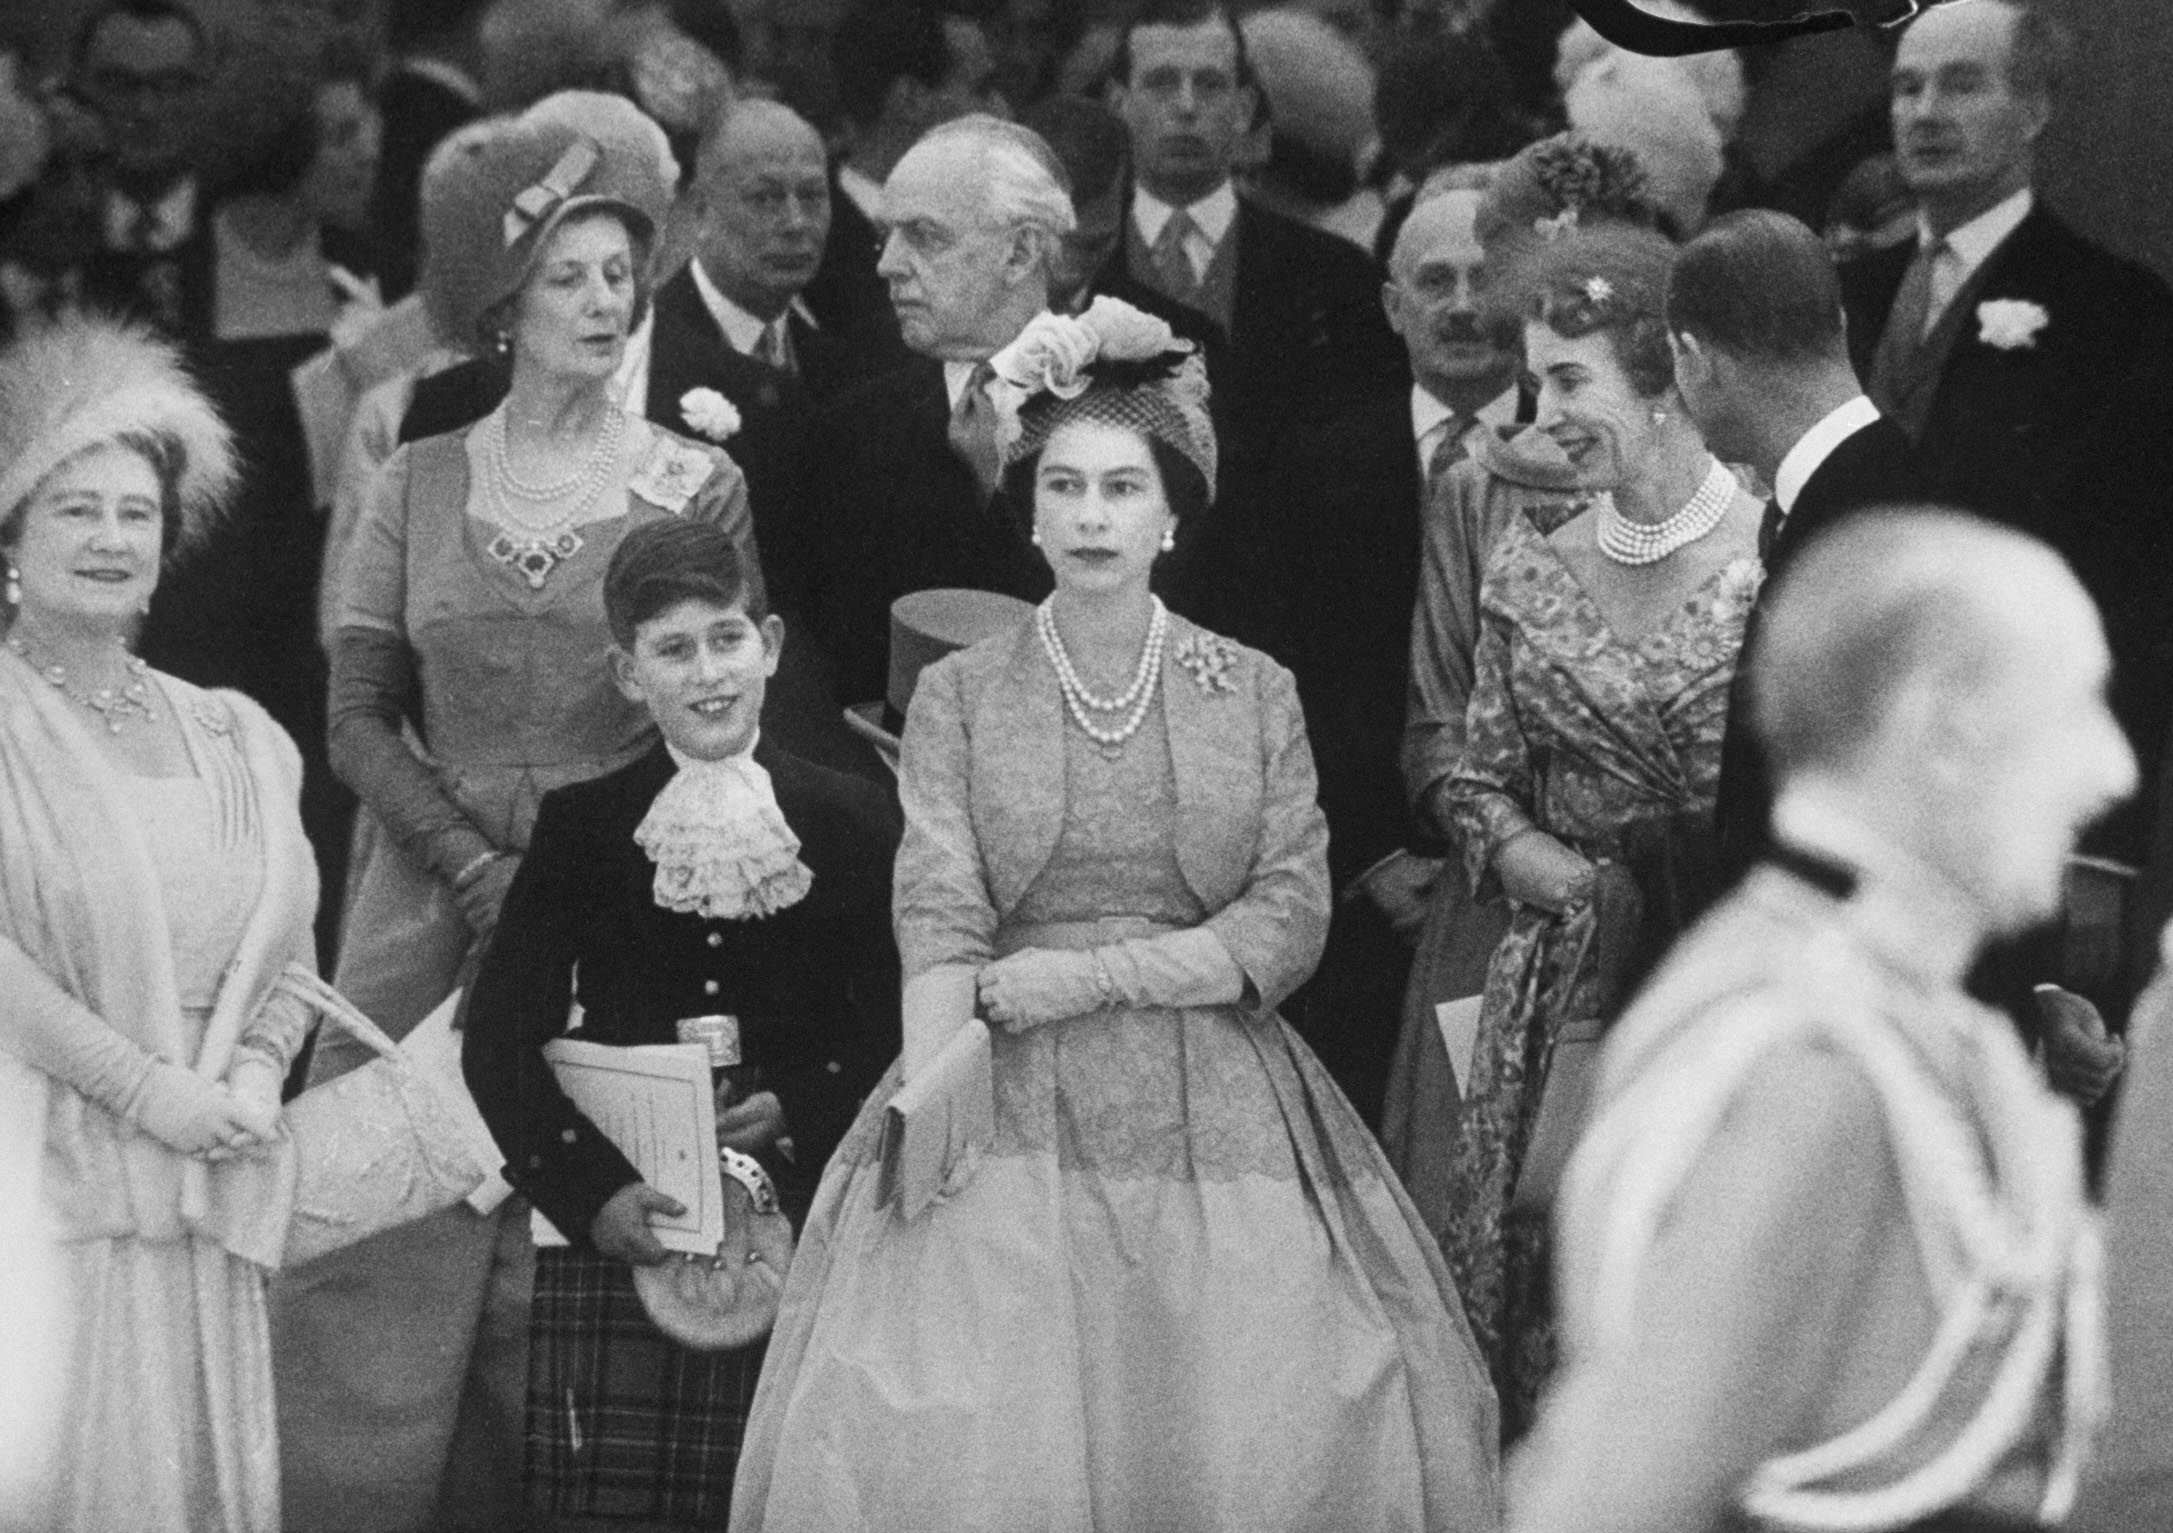 On May 6, 1960, Princess Margaret married Antony Armstrong-Jones at Westminster Abbey. With an estimated 300 million viewers worldwide tuning in, it marked a new era for royals fans, becoming the first royal wedding to be broadcast on television.